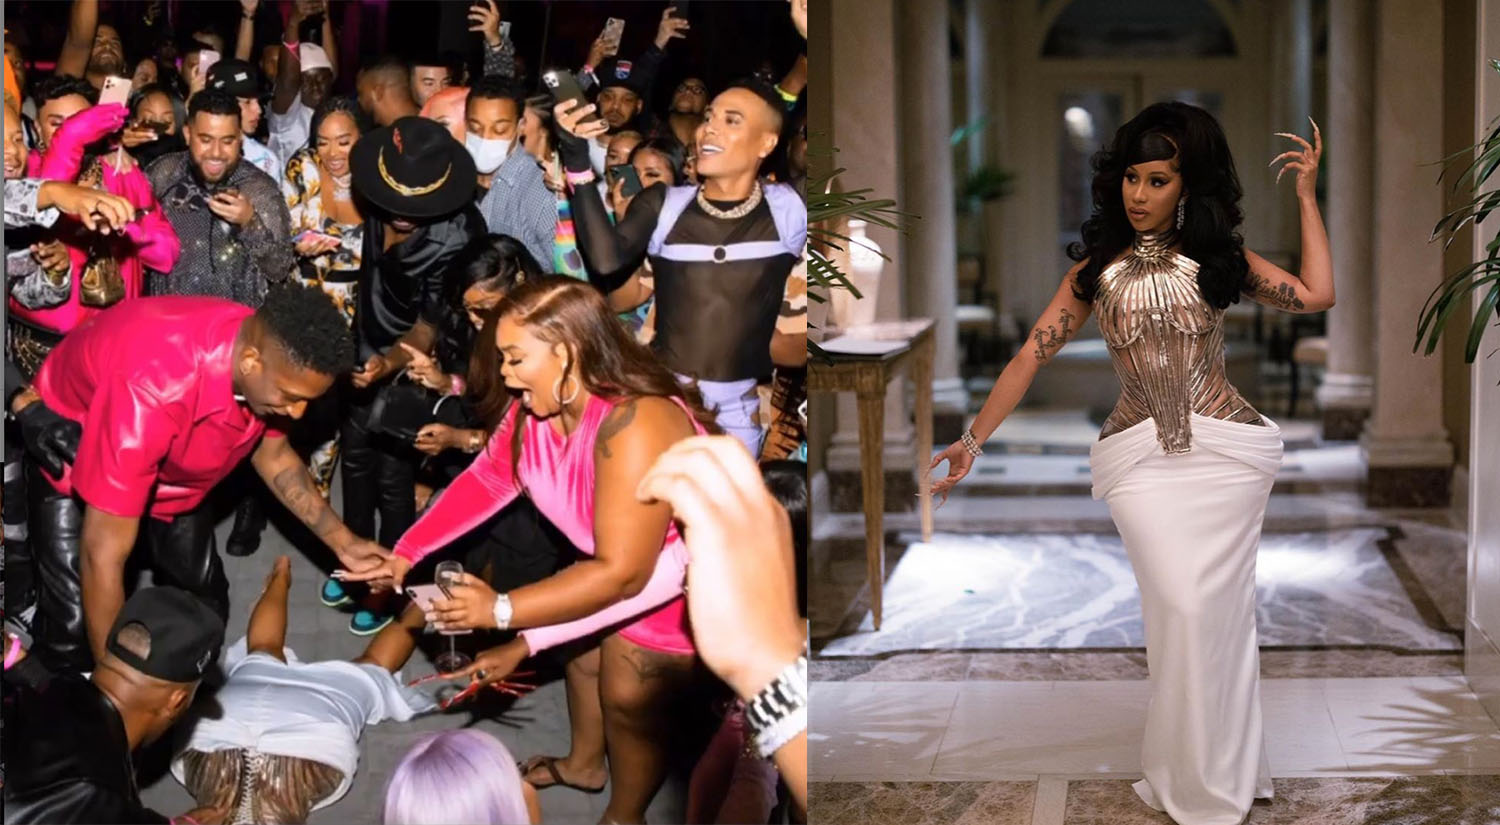 Cardi B S Birthday Bash In The Middle Of A Pandemic